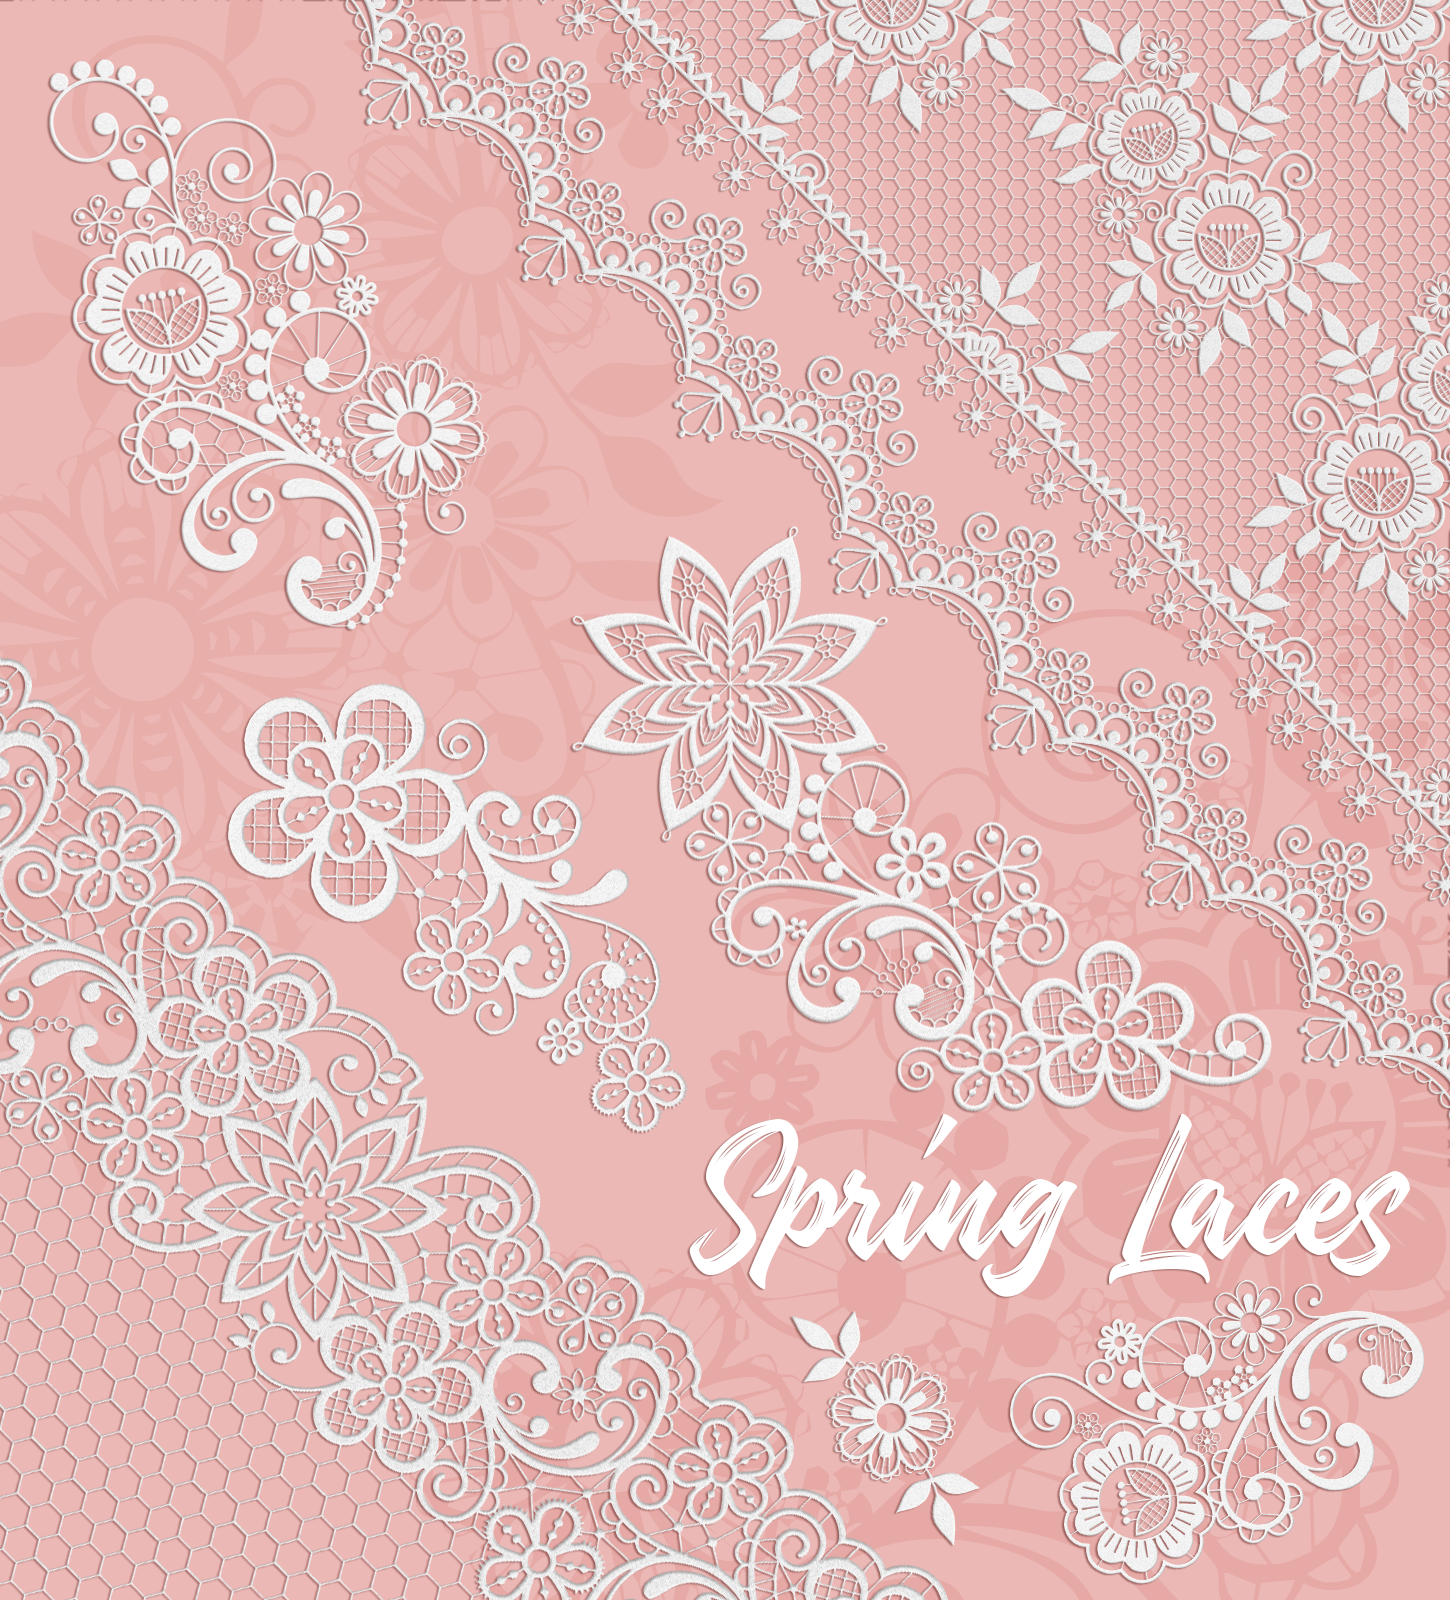 Spring Laces